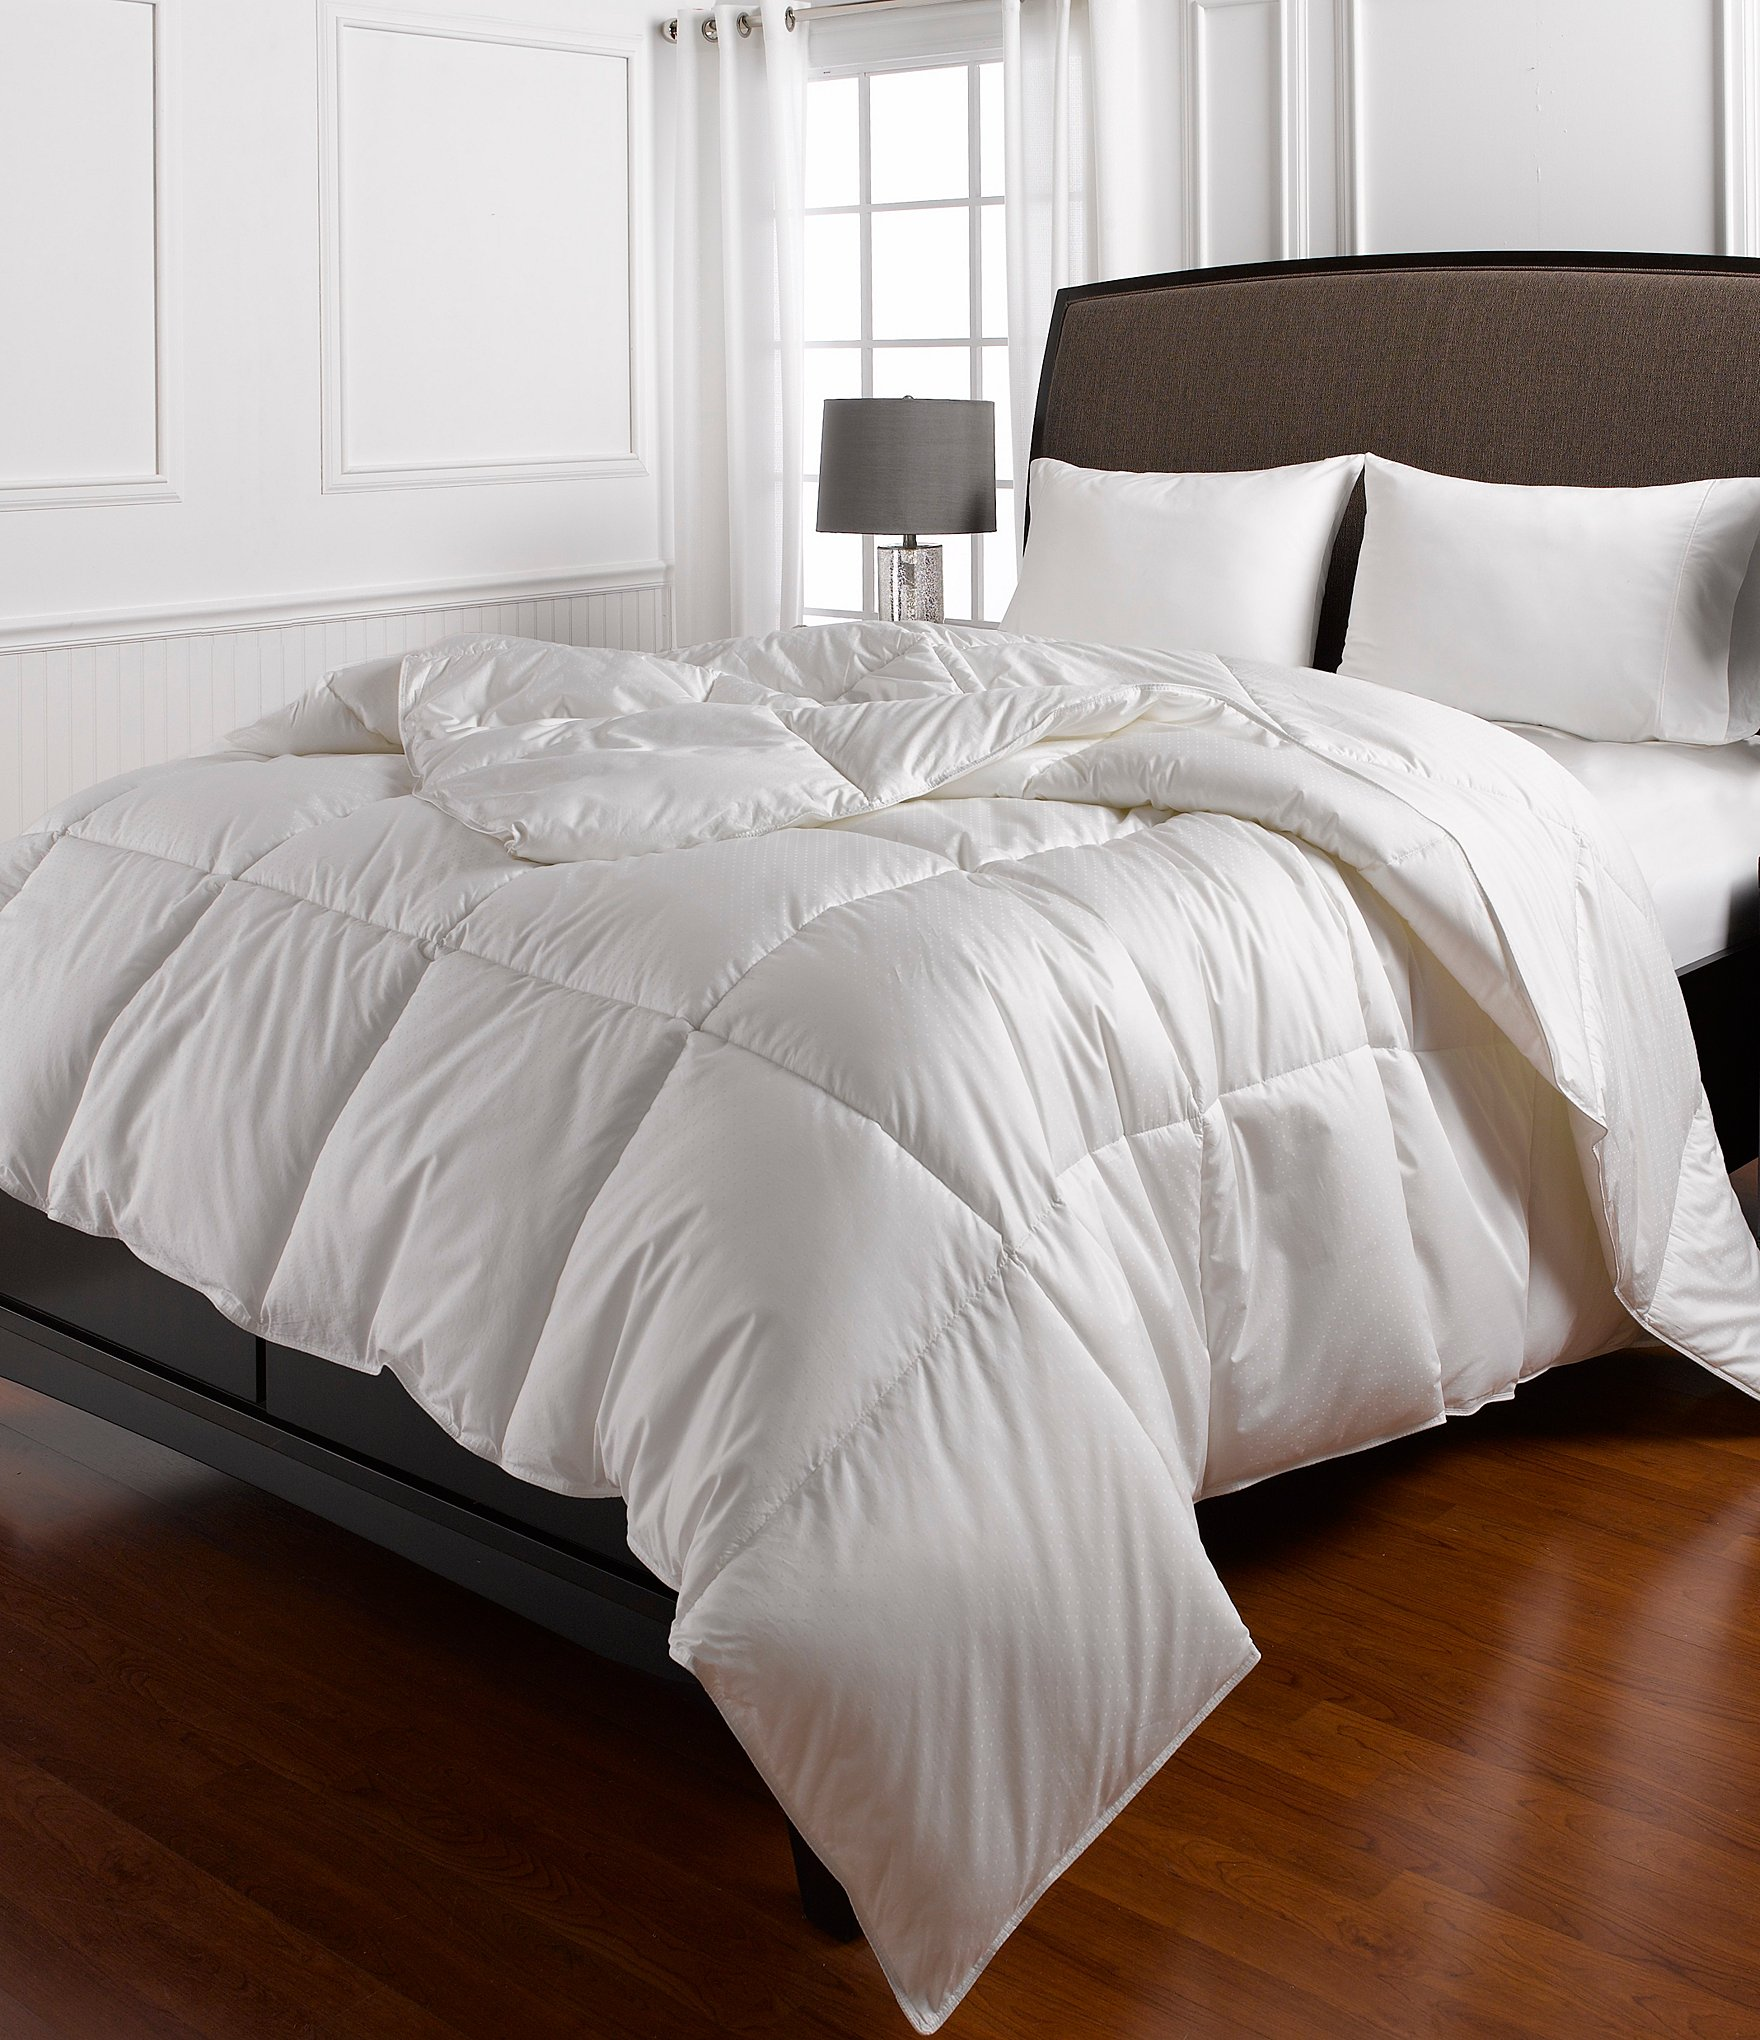 Southern Living Extra Warmth Down Comforter Duvet Insert